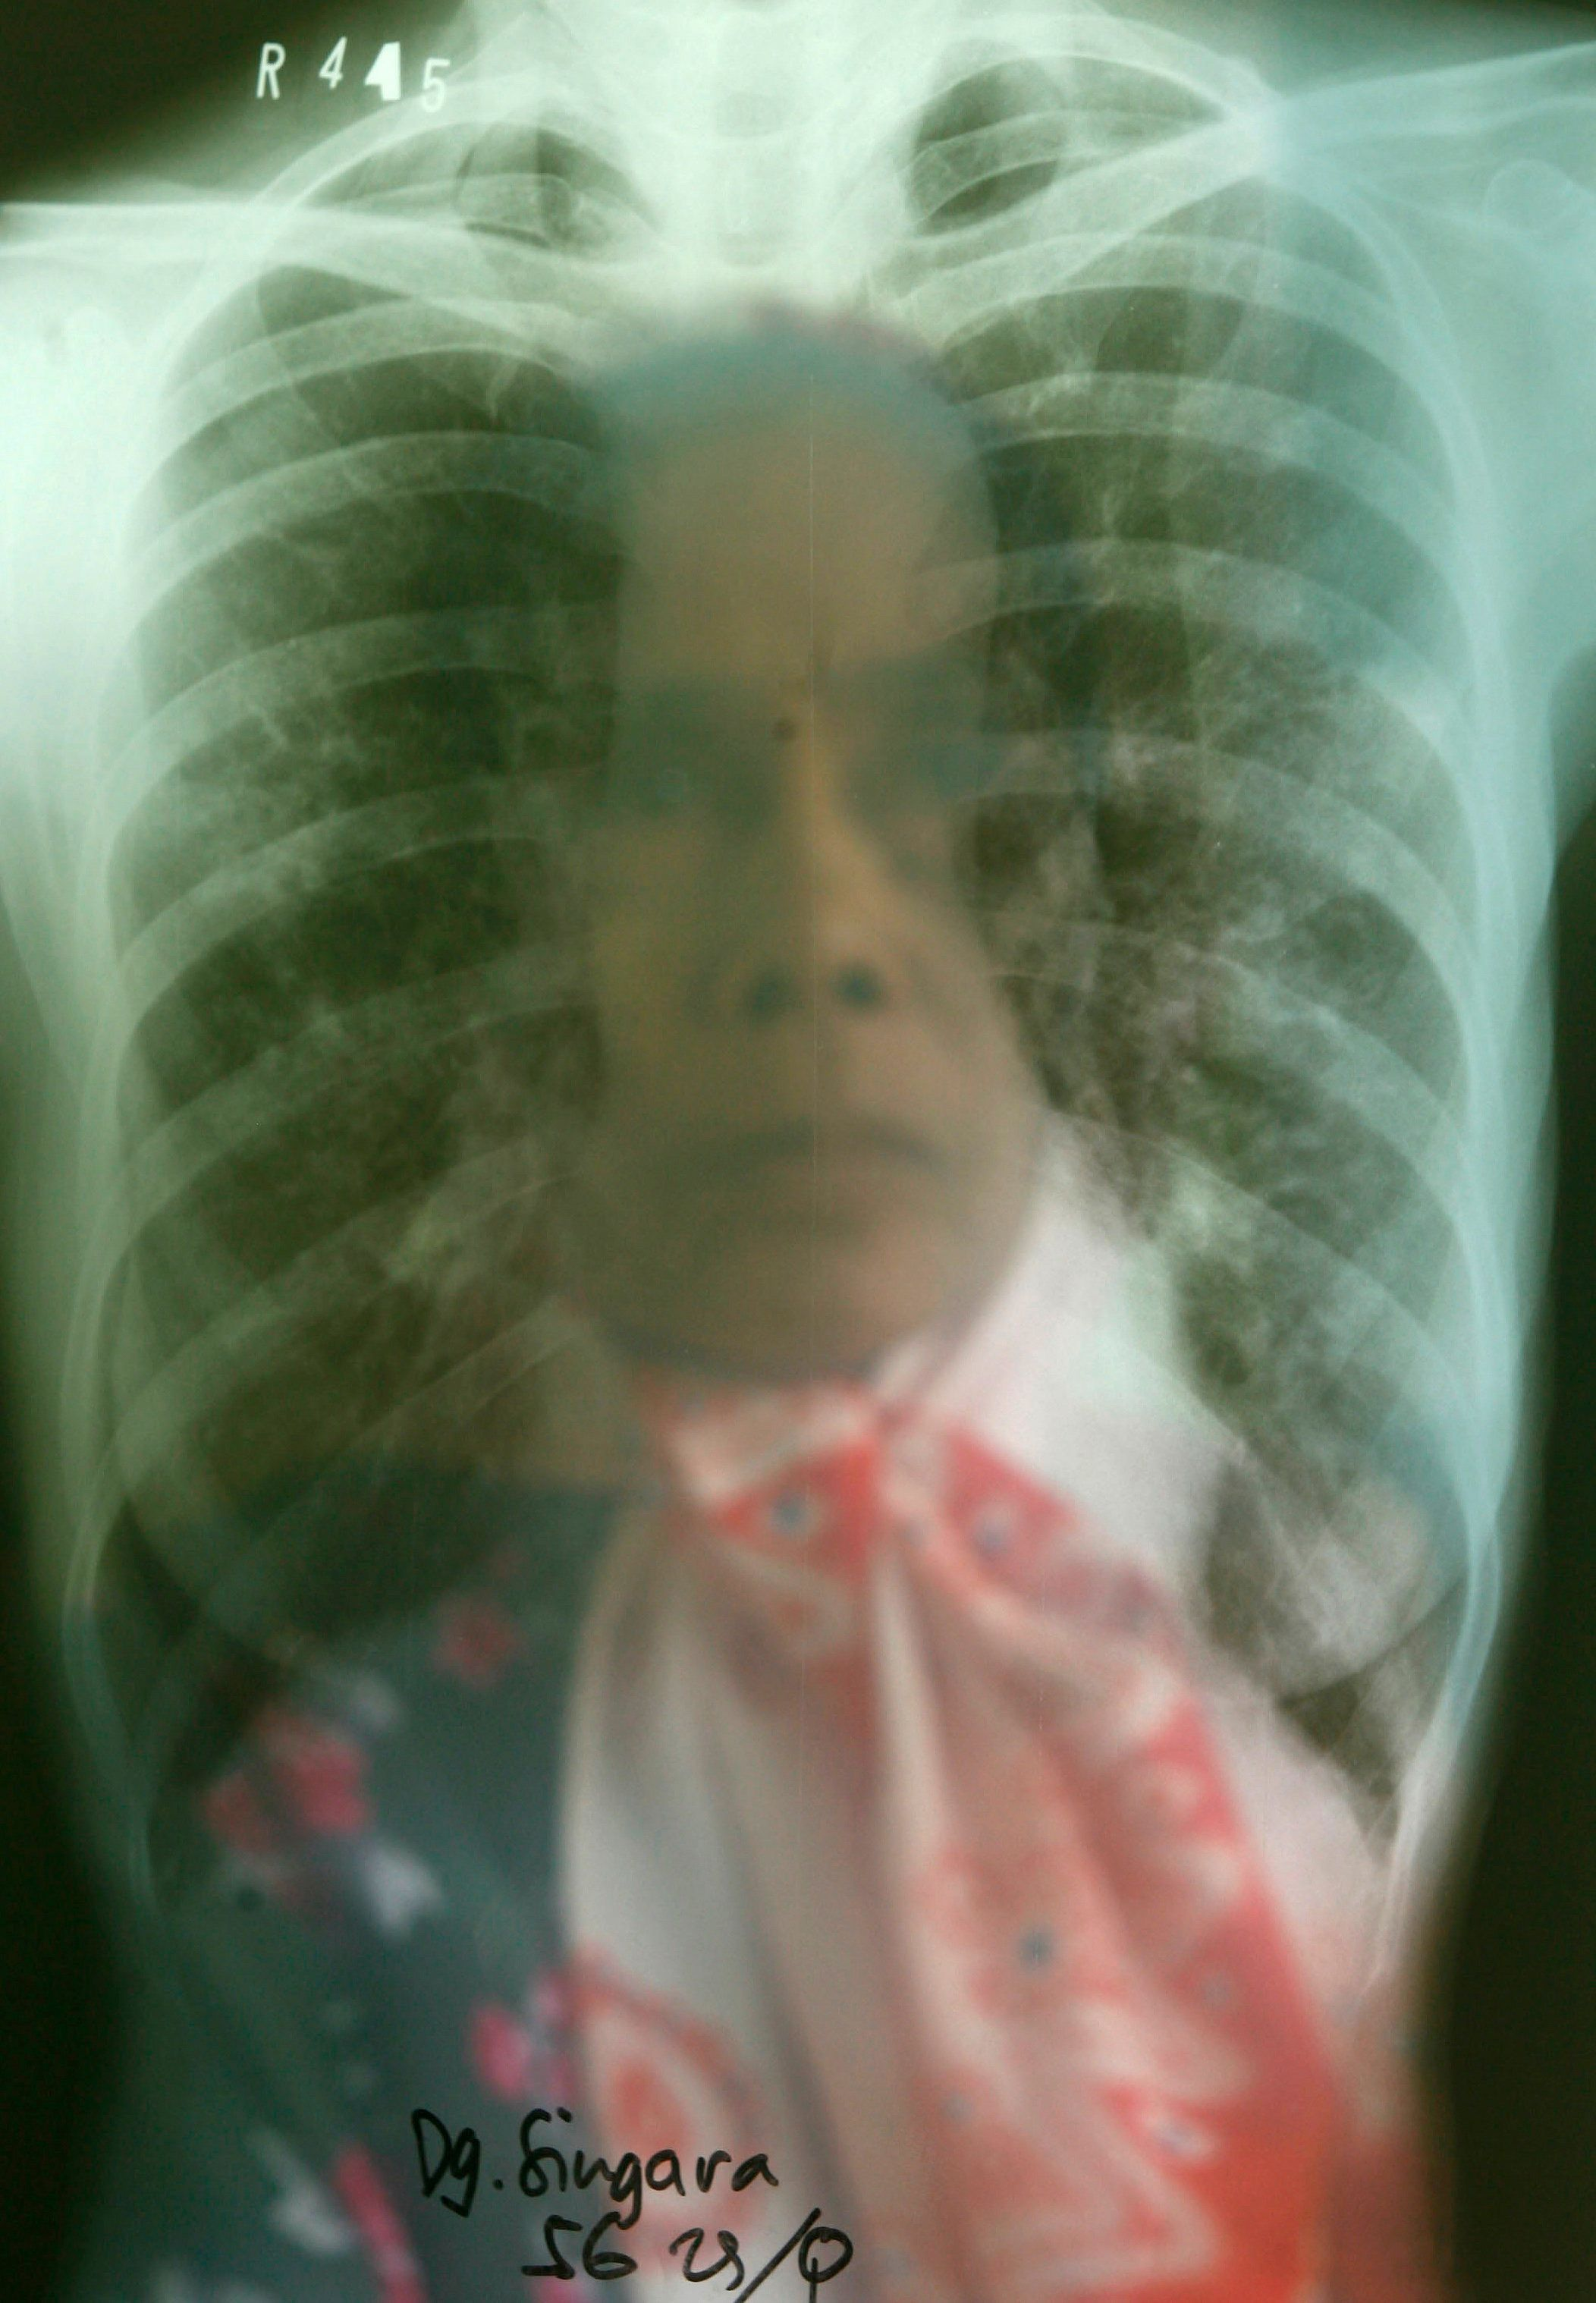 Tuberculosis Remains World's Top Infectious Killer, But A Turning Point May Be Near